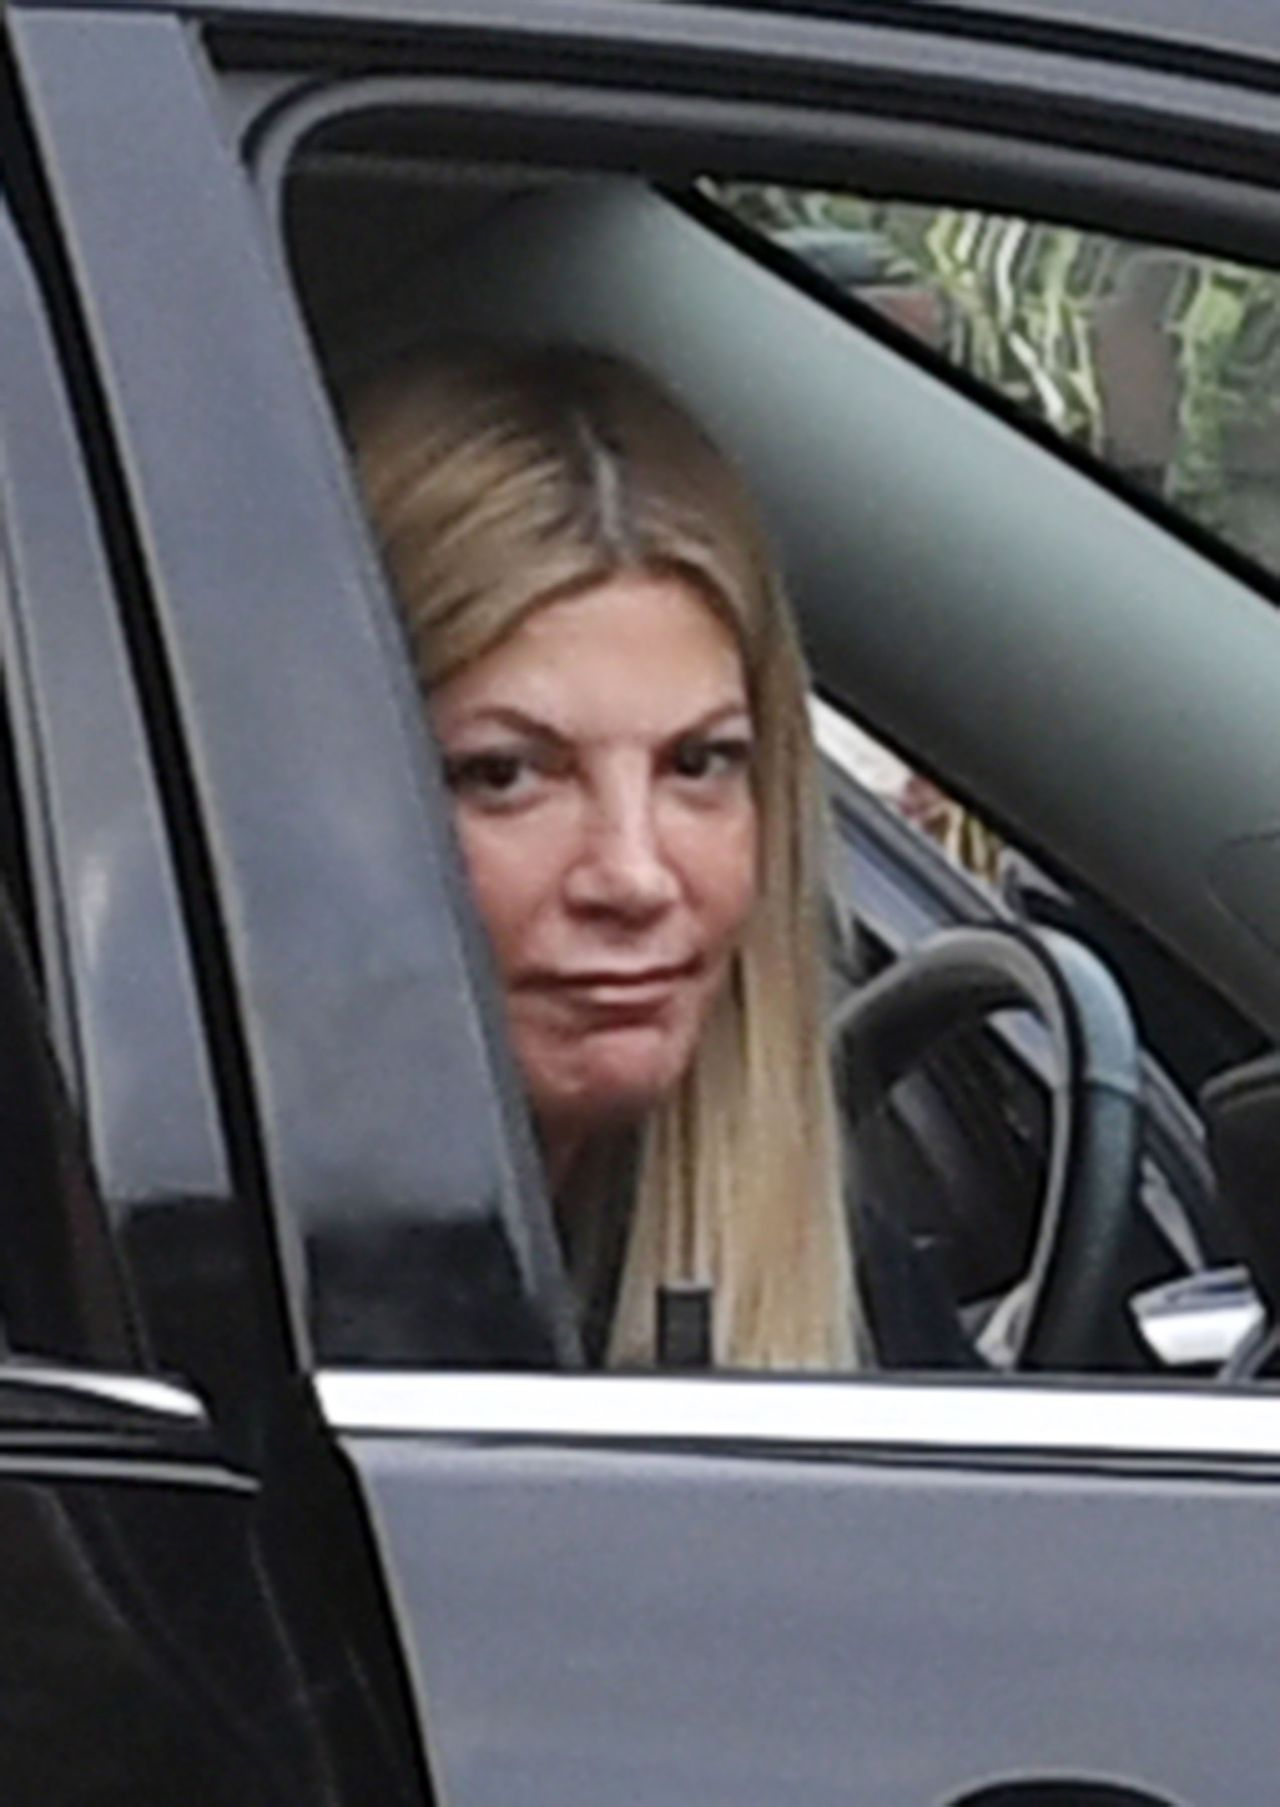 EXCLUSIVE: Tori Spelling cries in her car after learning about Luke Perry's sudden death